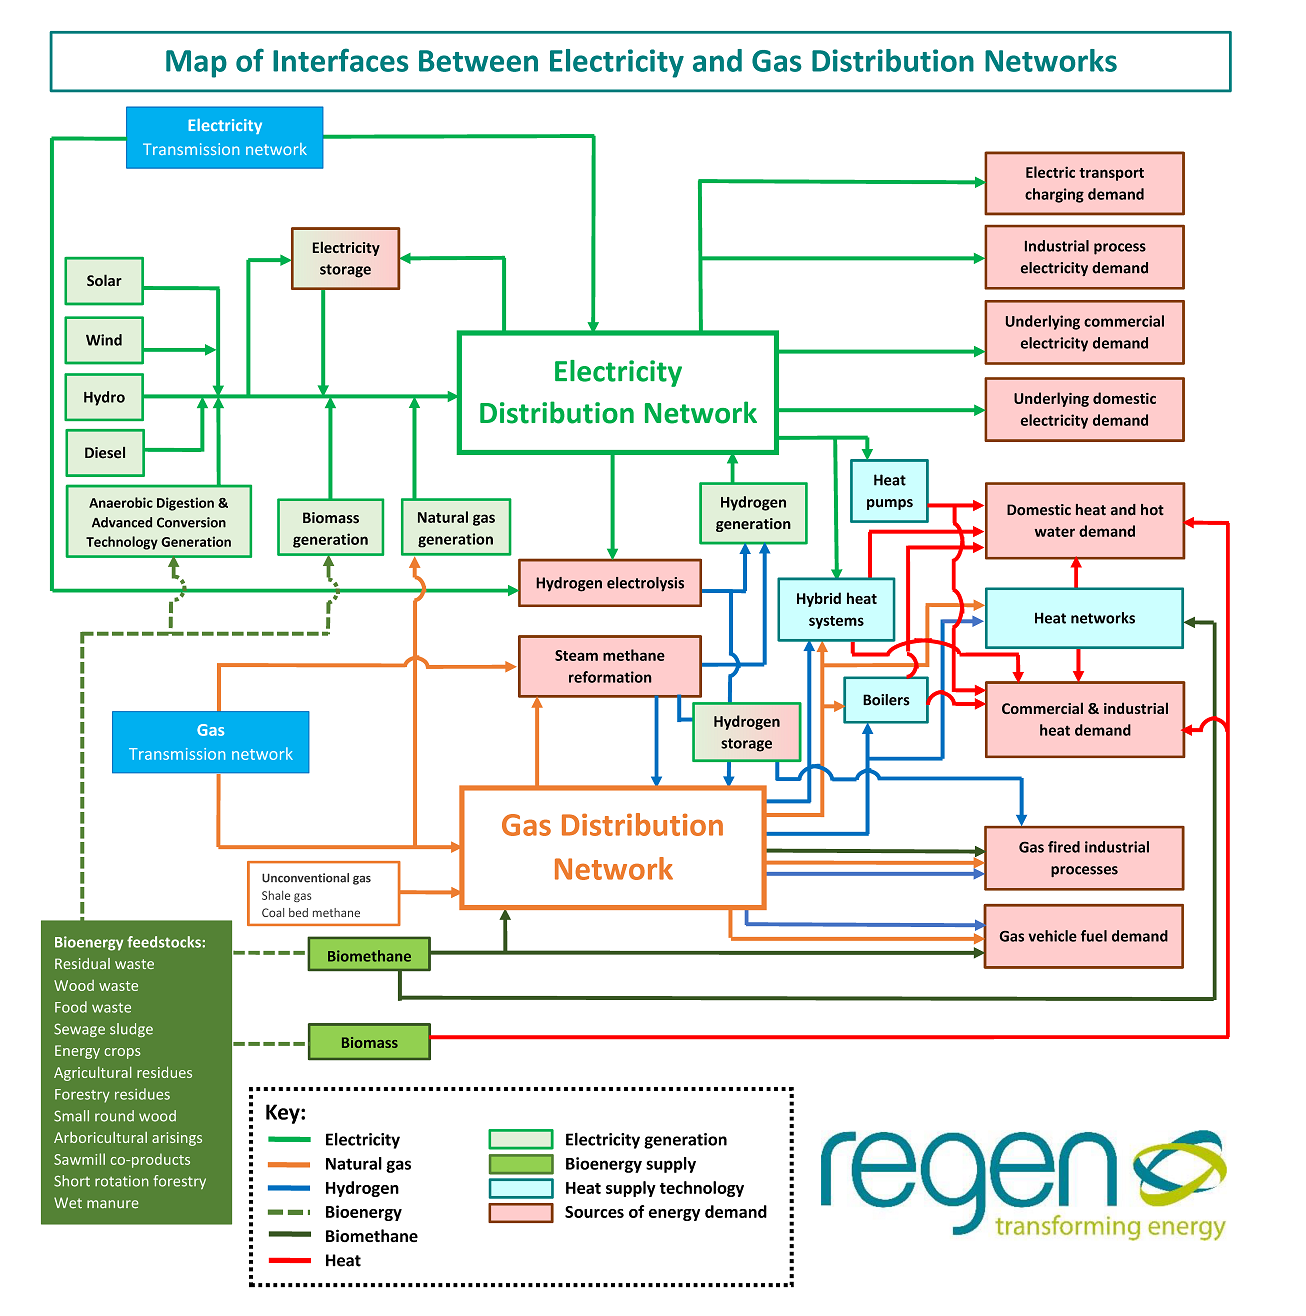 New Distribution Network Interaction Map